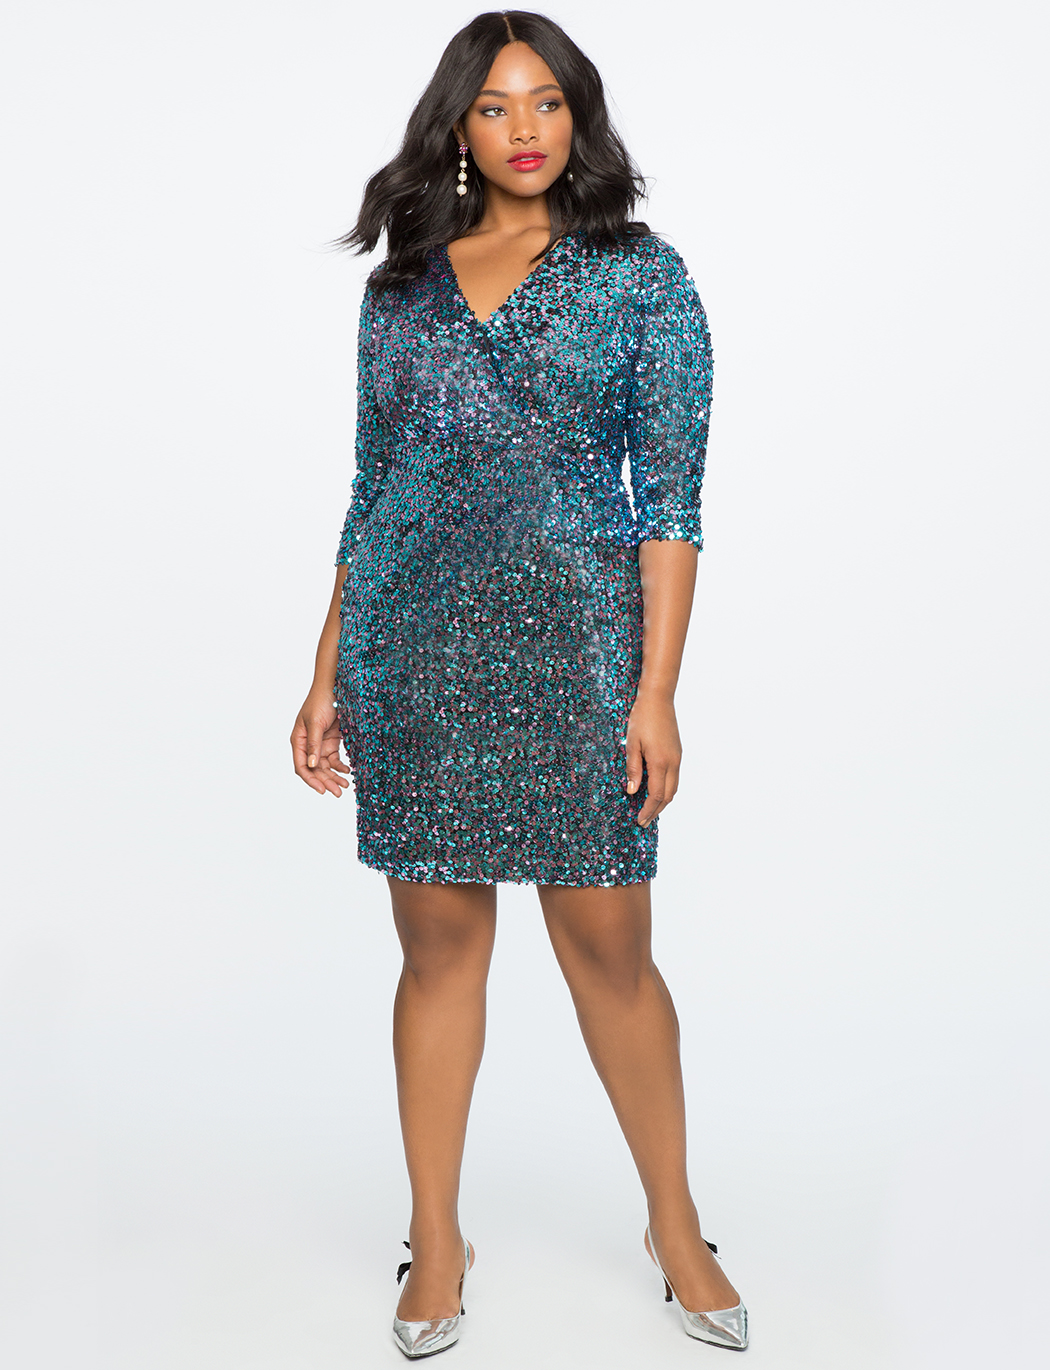 V-Neck Sequin Sheath Dress